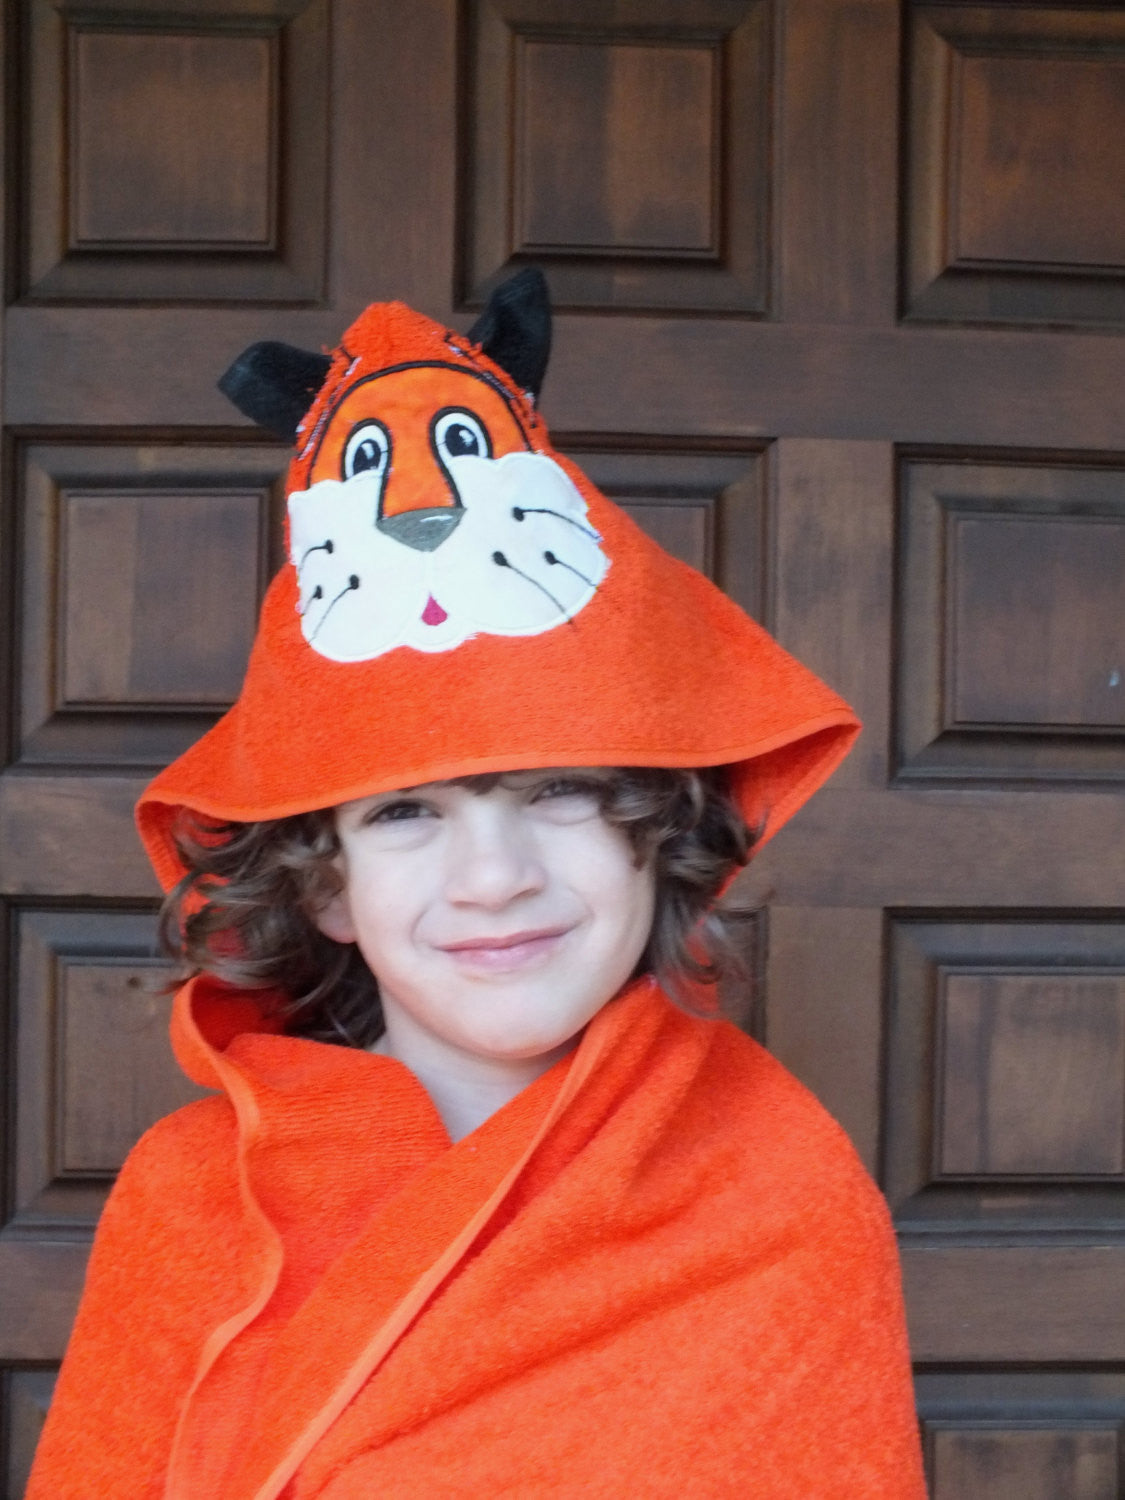 Tiger hooded towel - personalized hooded towel